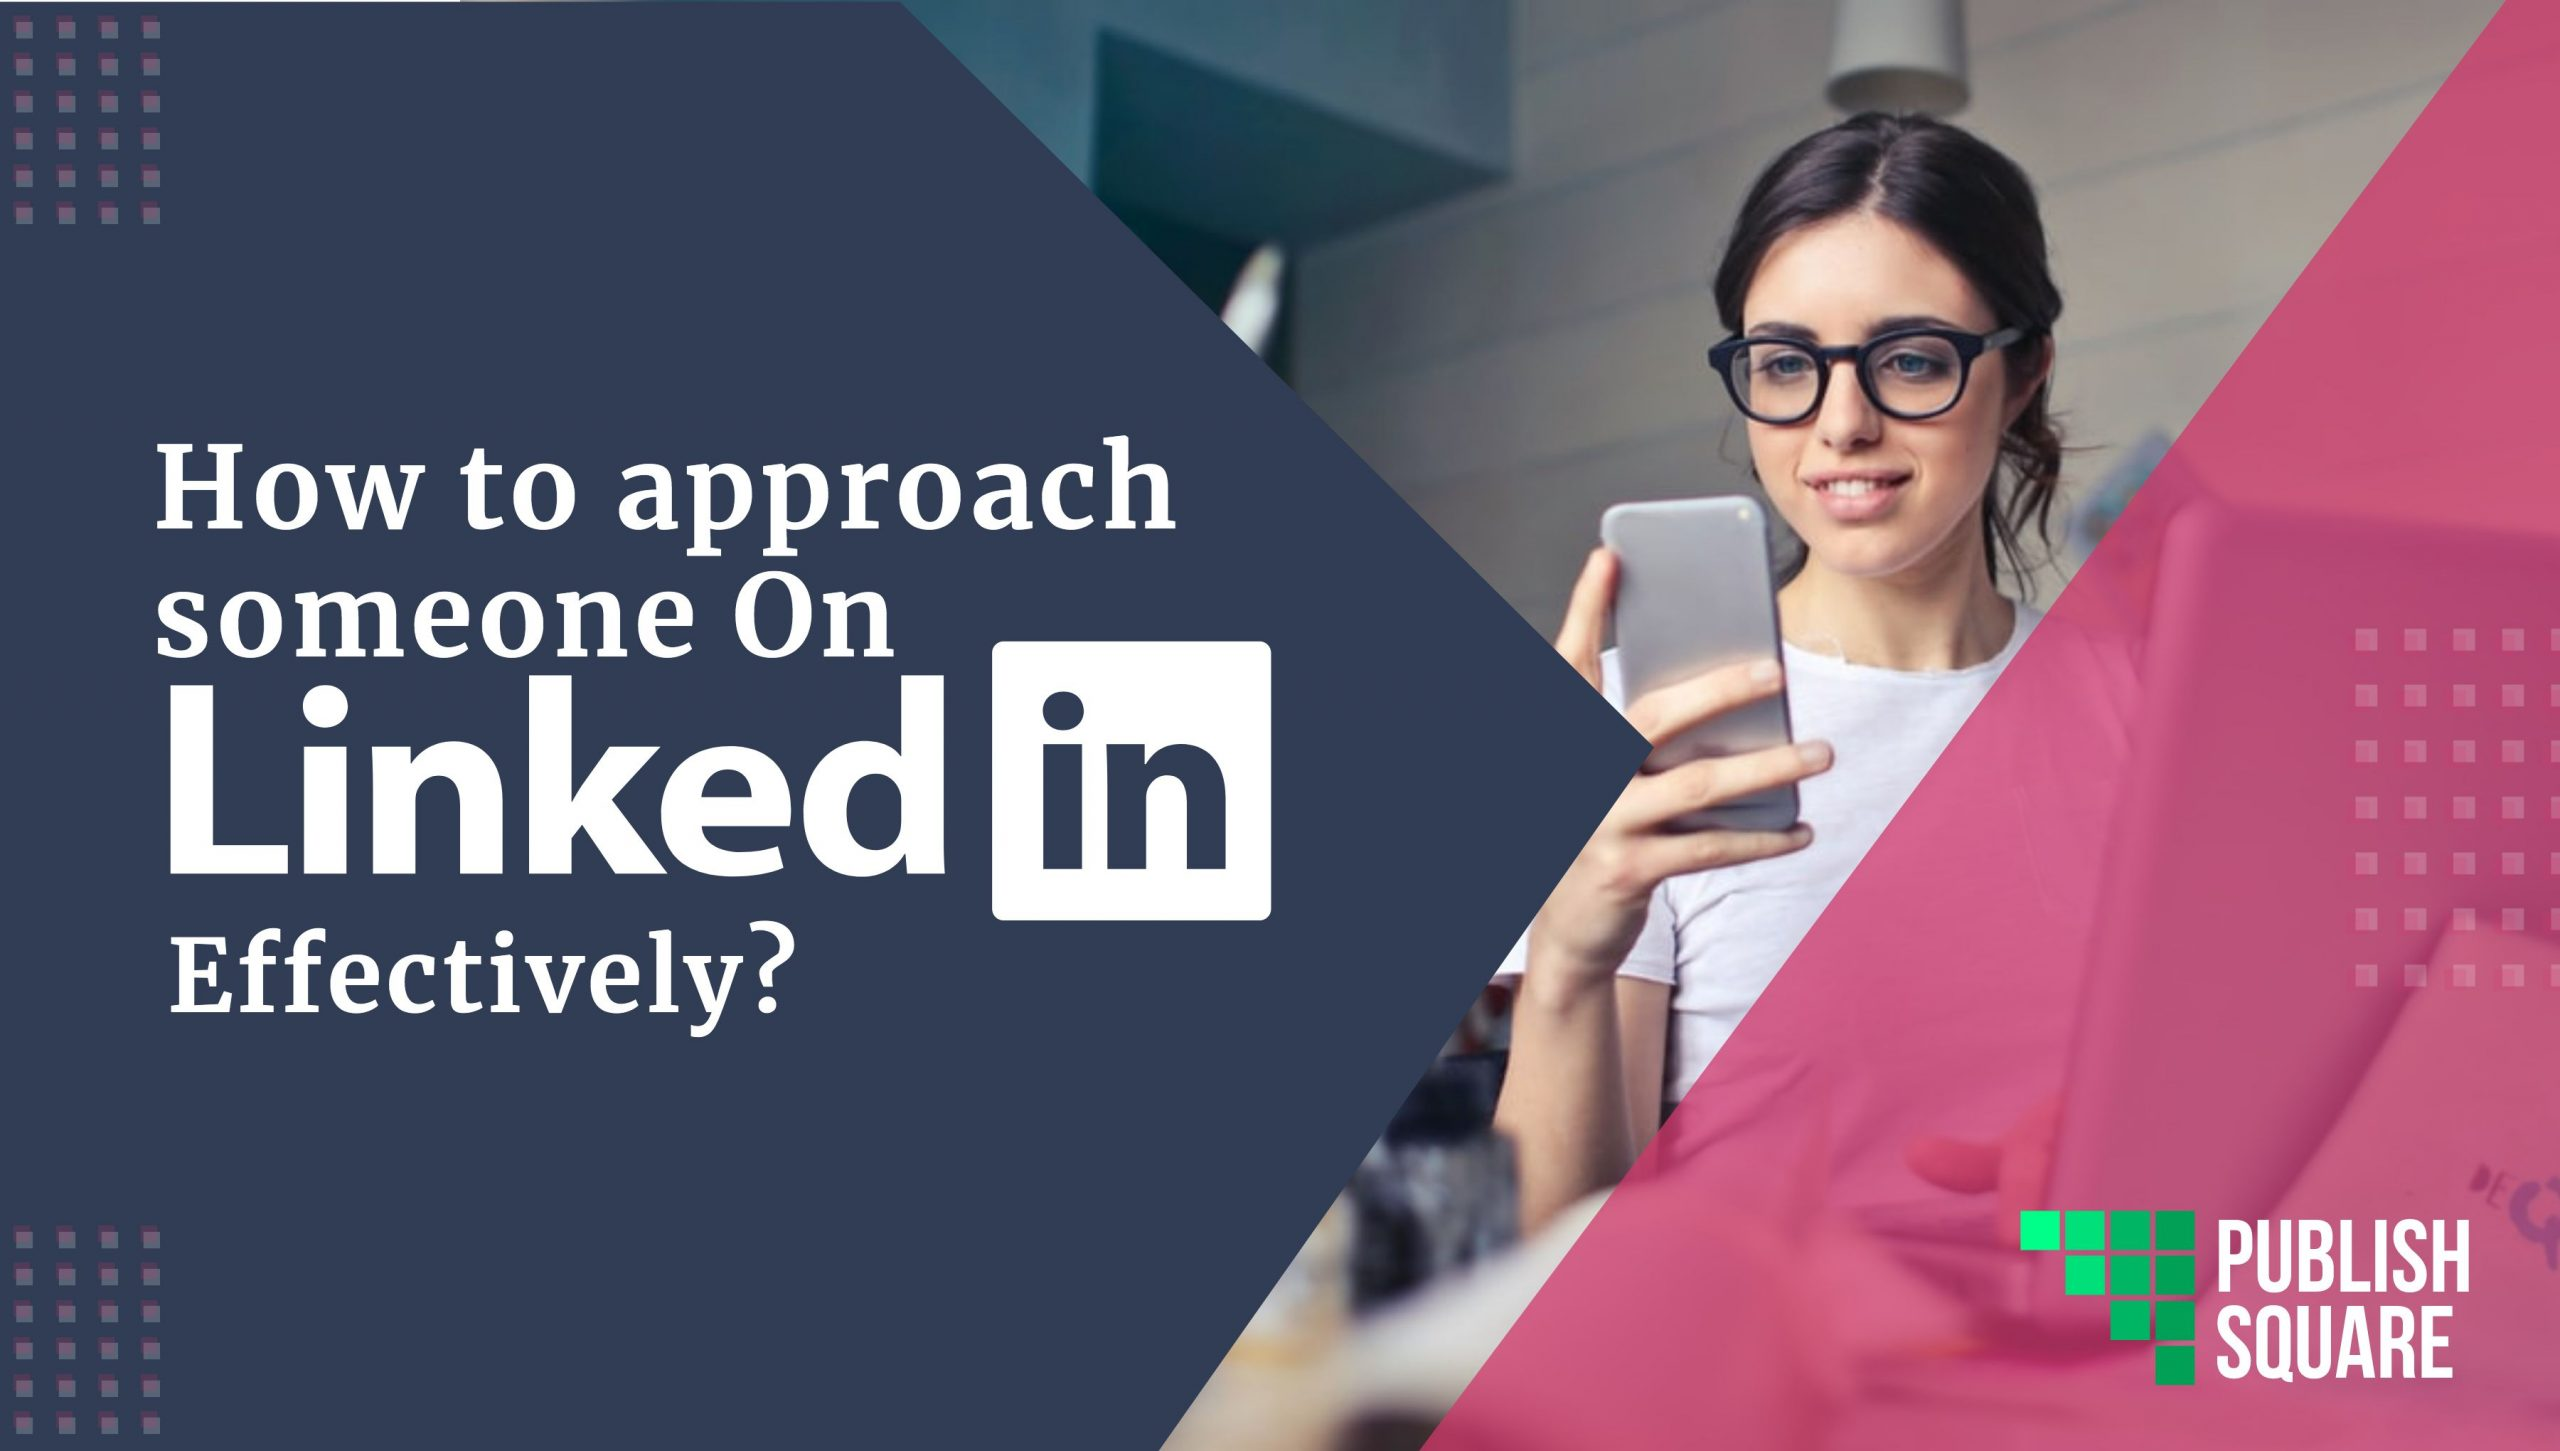 How to approach someone on LinkedIn Effectively?